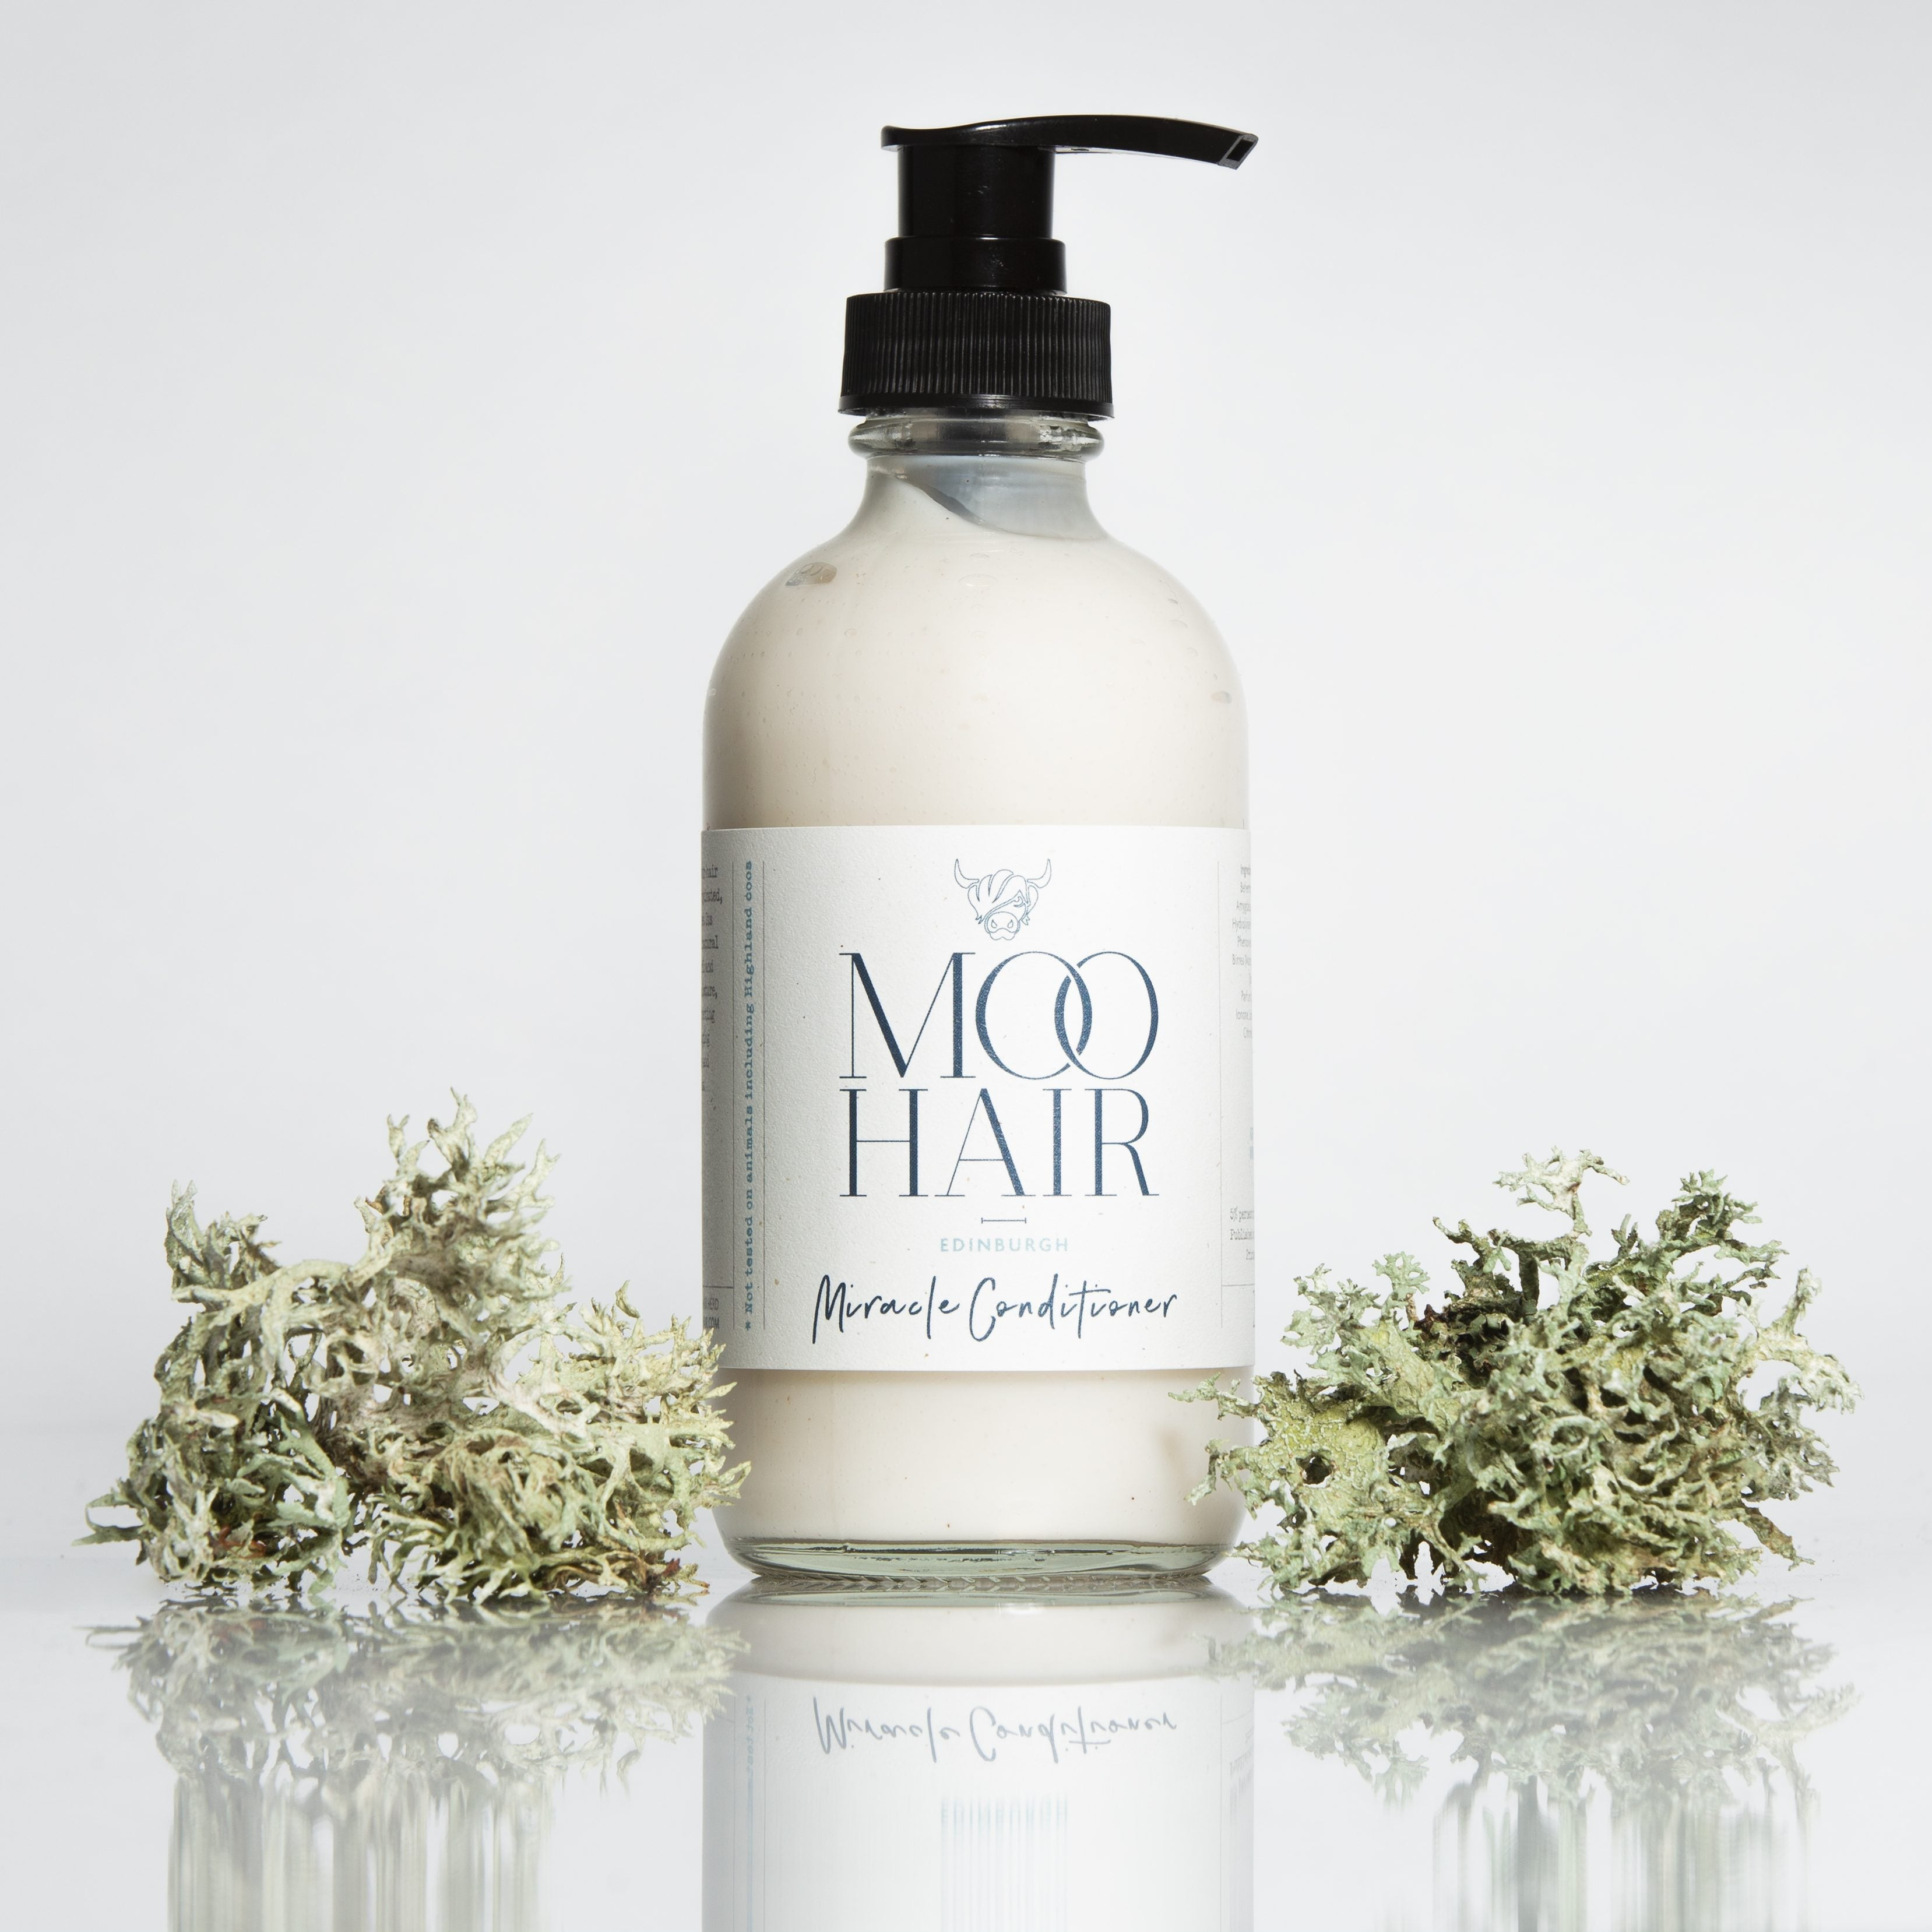 Miracle Hair Conditioner (250ml) - hair hydrated, soft, shiny and frizz free - natoorio